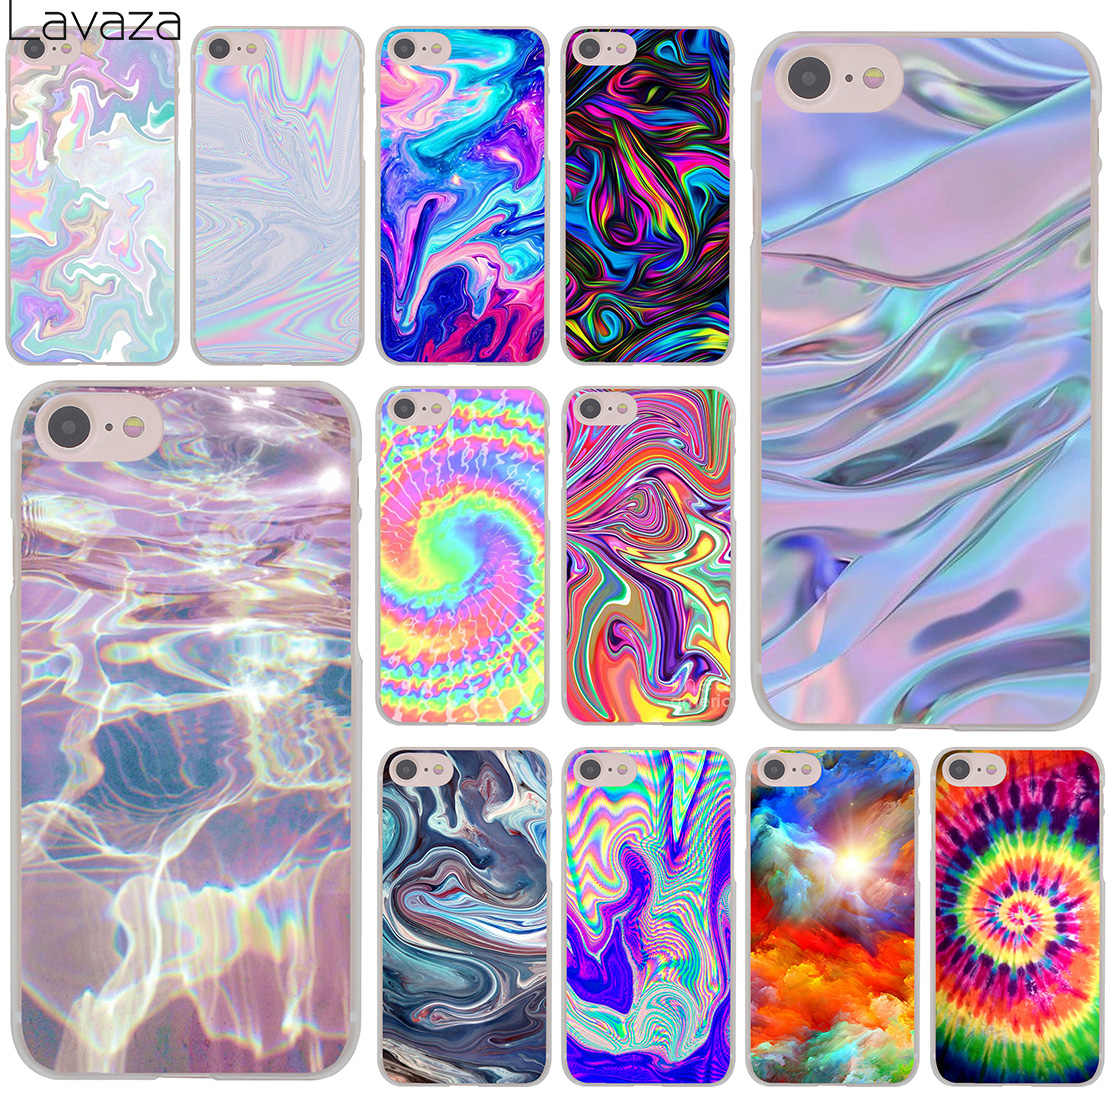 9b8f3253642 Lavaza Abstract Rainbow Ripple Tie Dye art Hard Cover Case for iPhone X XS  Max XR